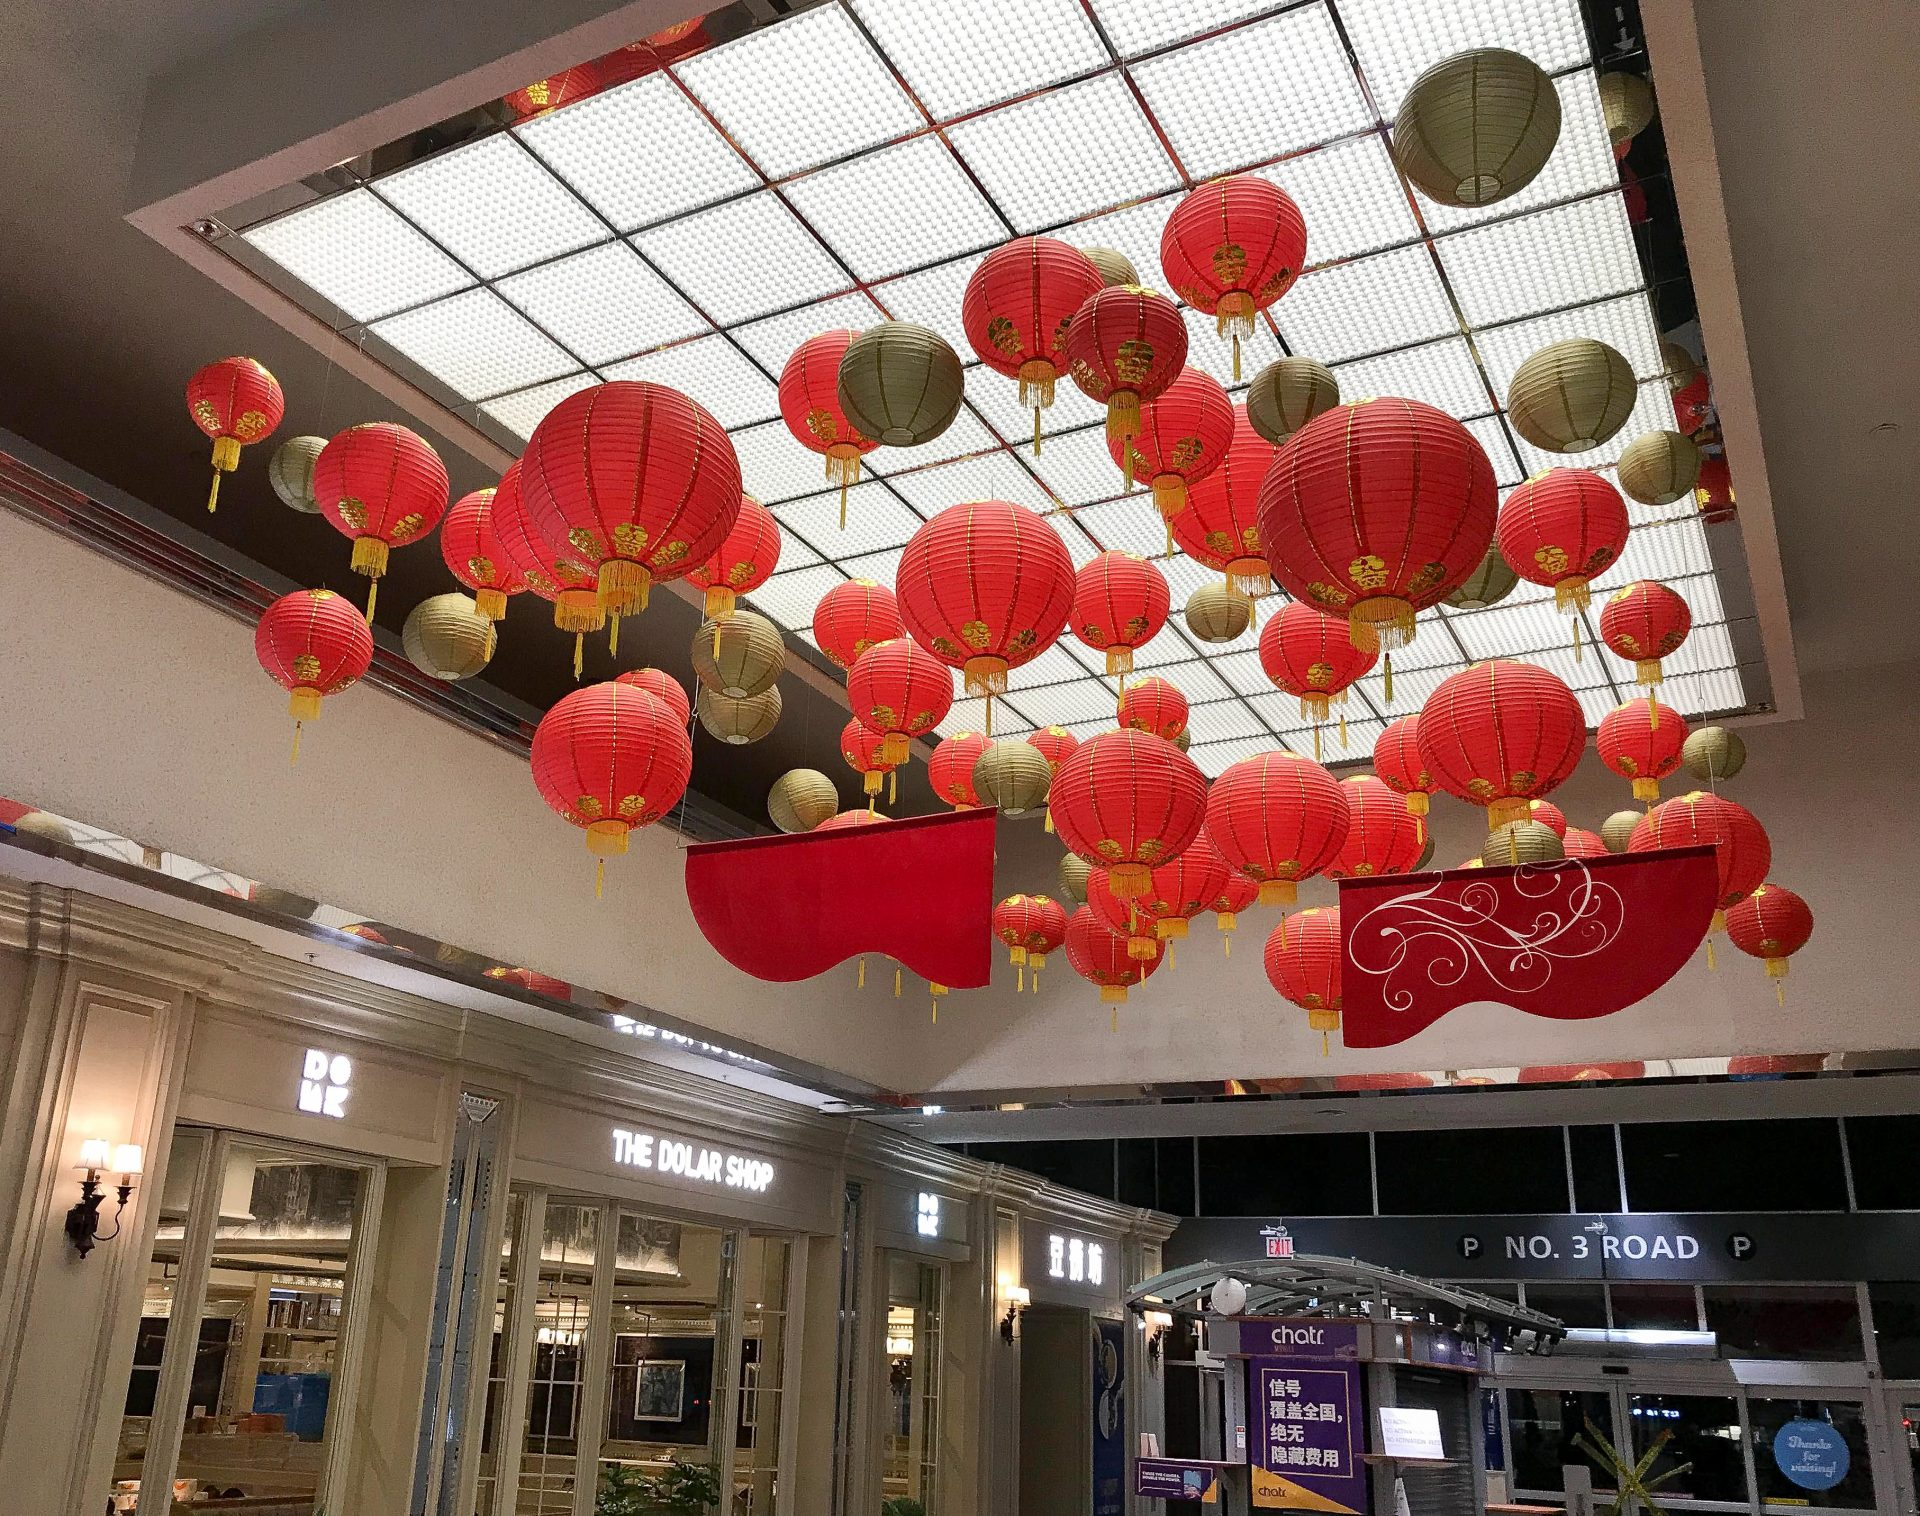 Large cluster of red and gold traditional chinese lanterns for lunar new year at Lansdowne Mall